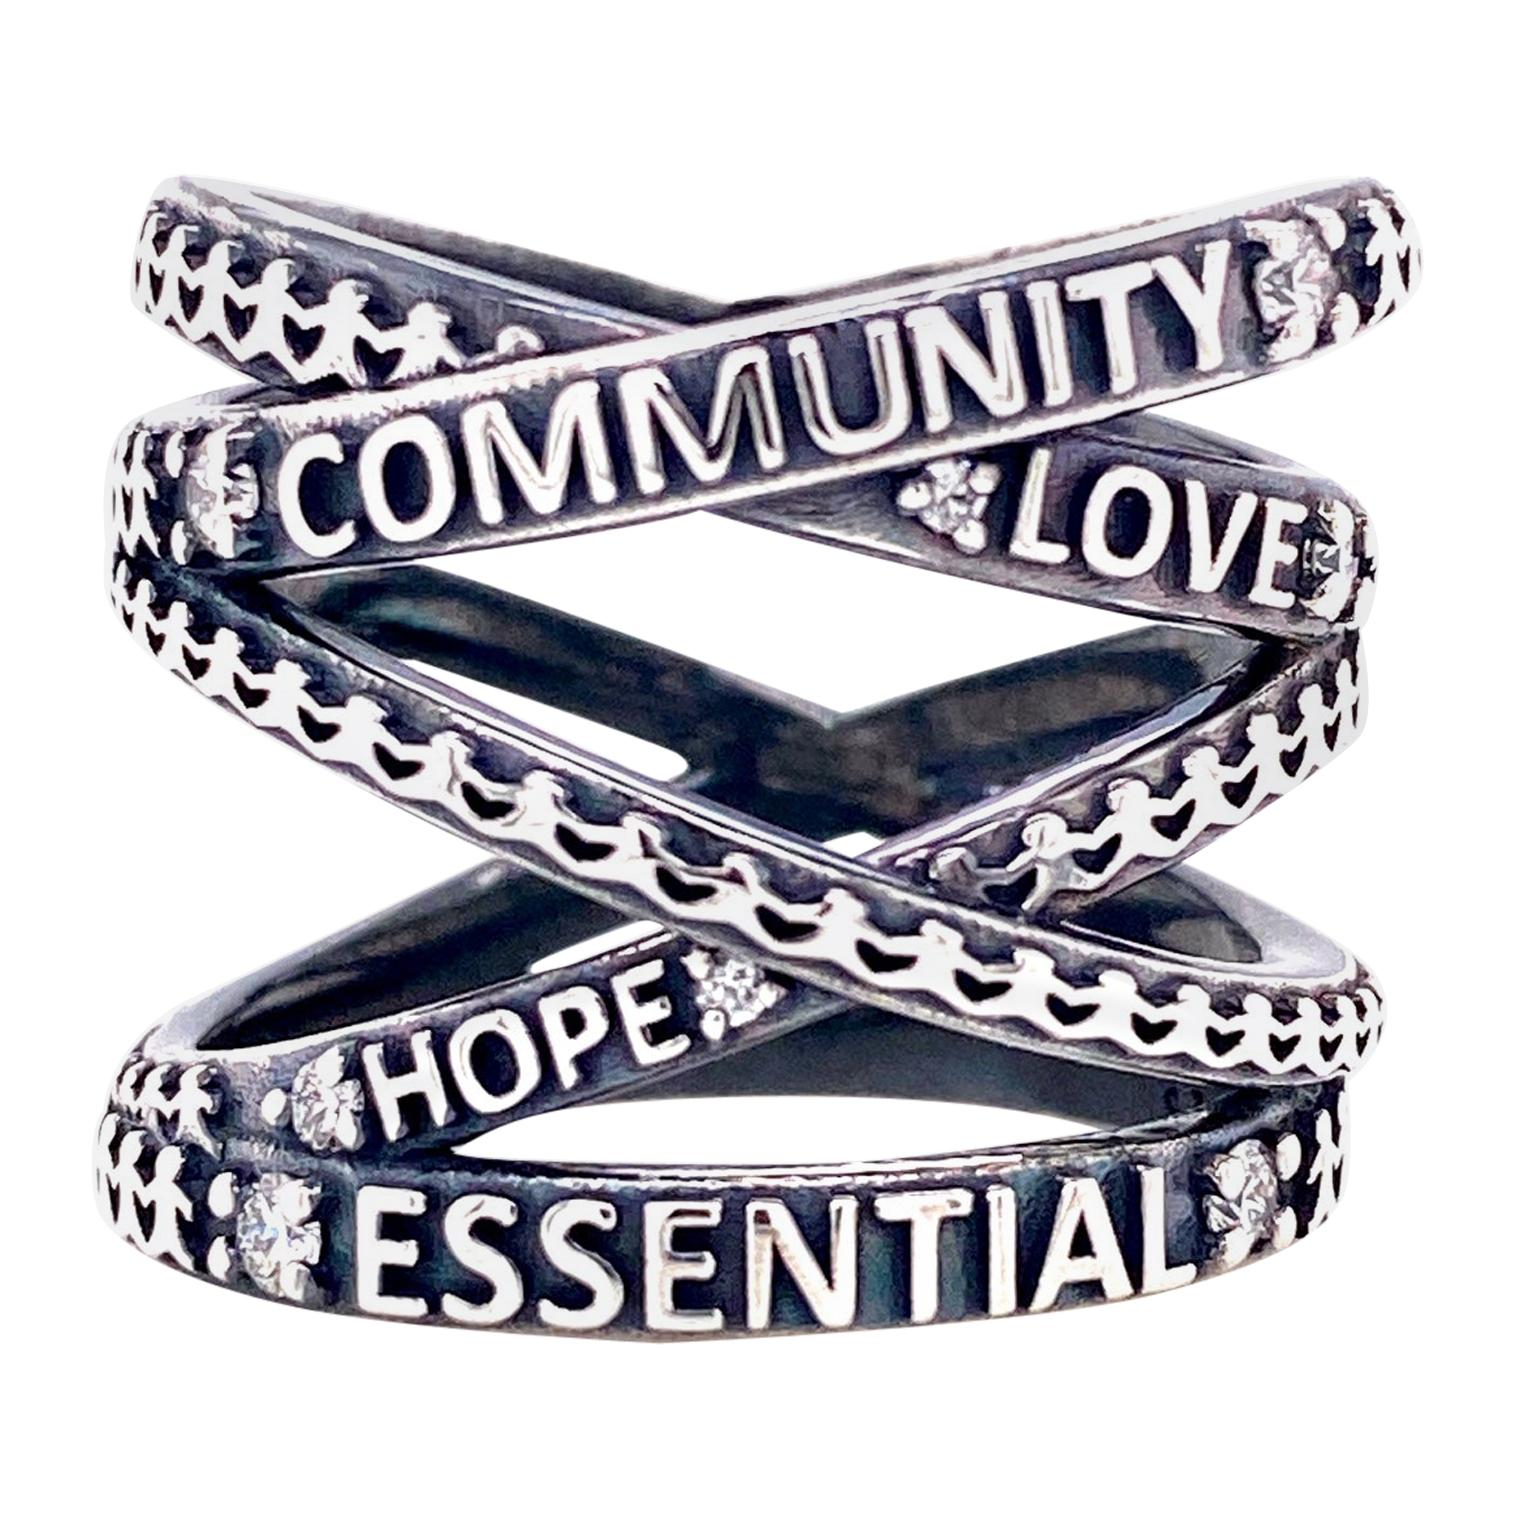 """Oxidized Sterling Silver """"Not Non-Essential"""" Wrap Ring with White Diamonds"""